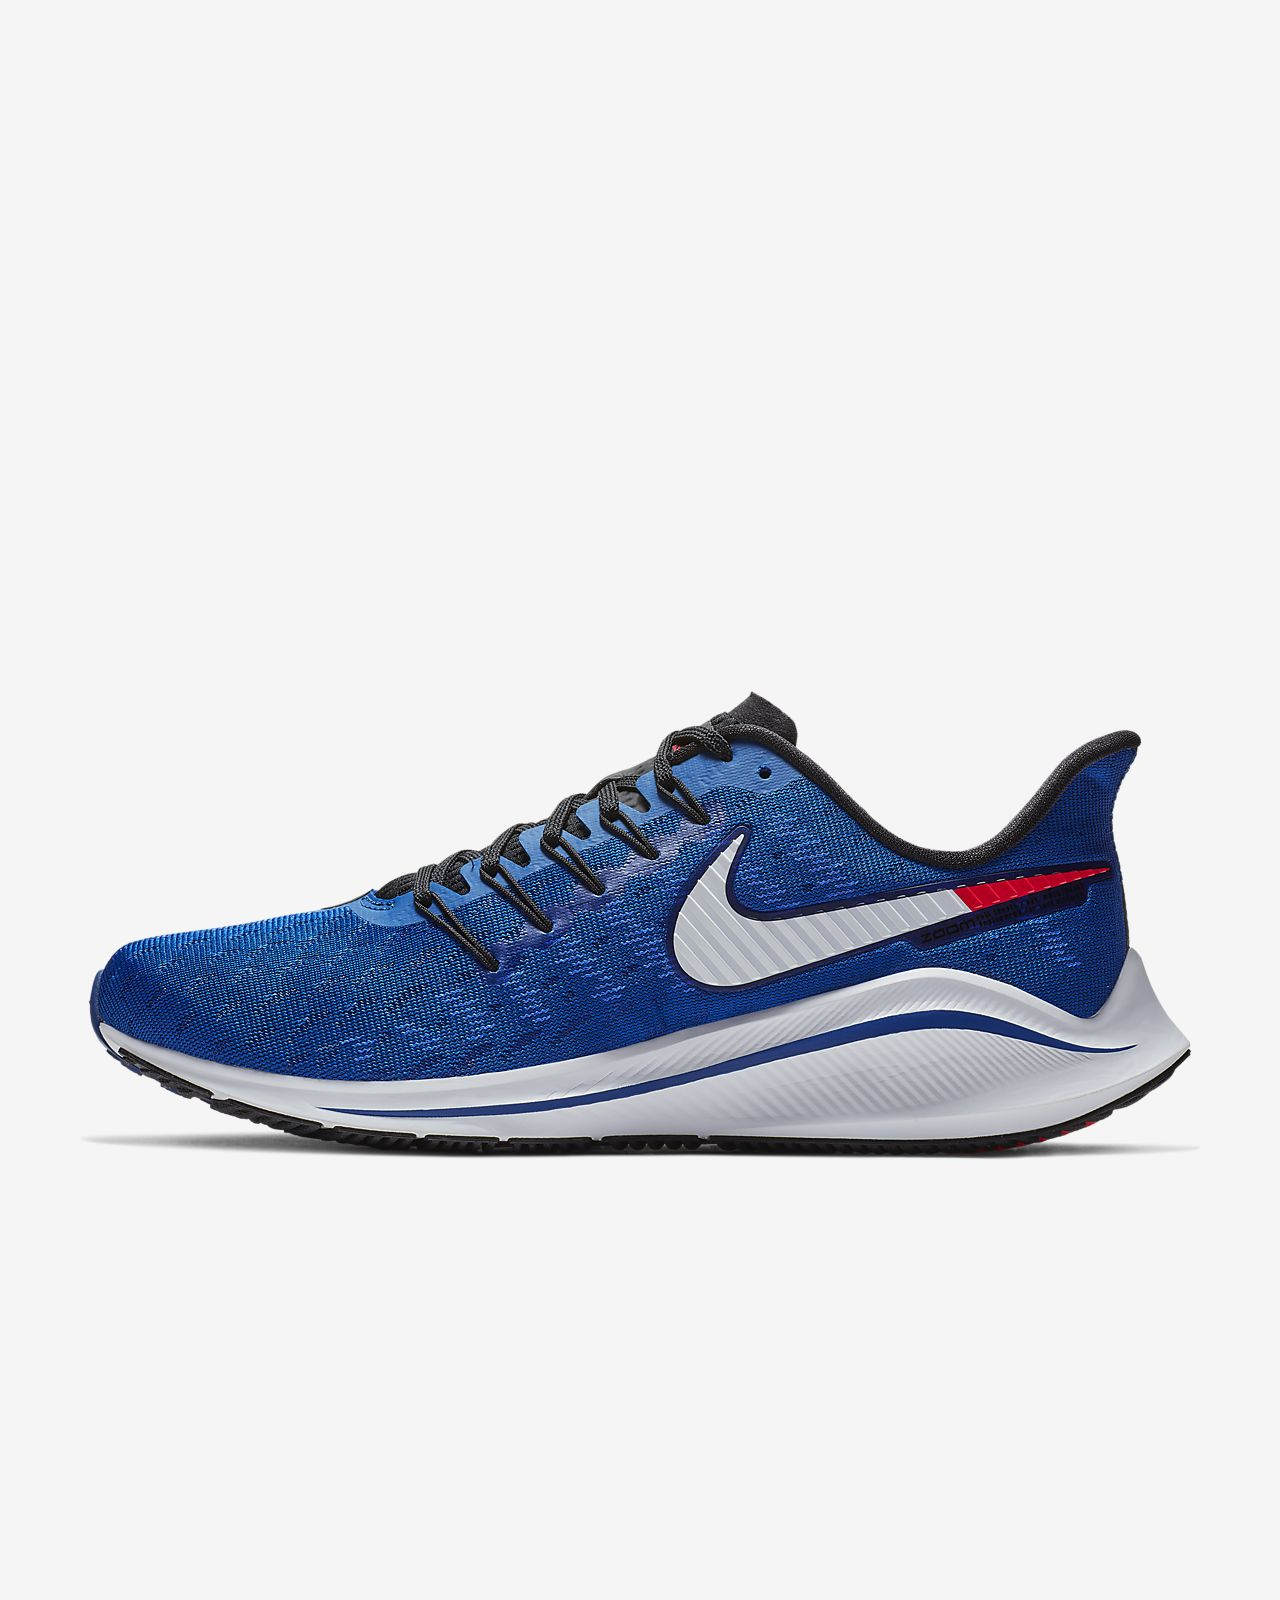 lowest price 7b10c 7e157 ... Chaussure de running Nike Air Zoom Vomero 14 pour Homme